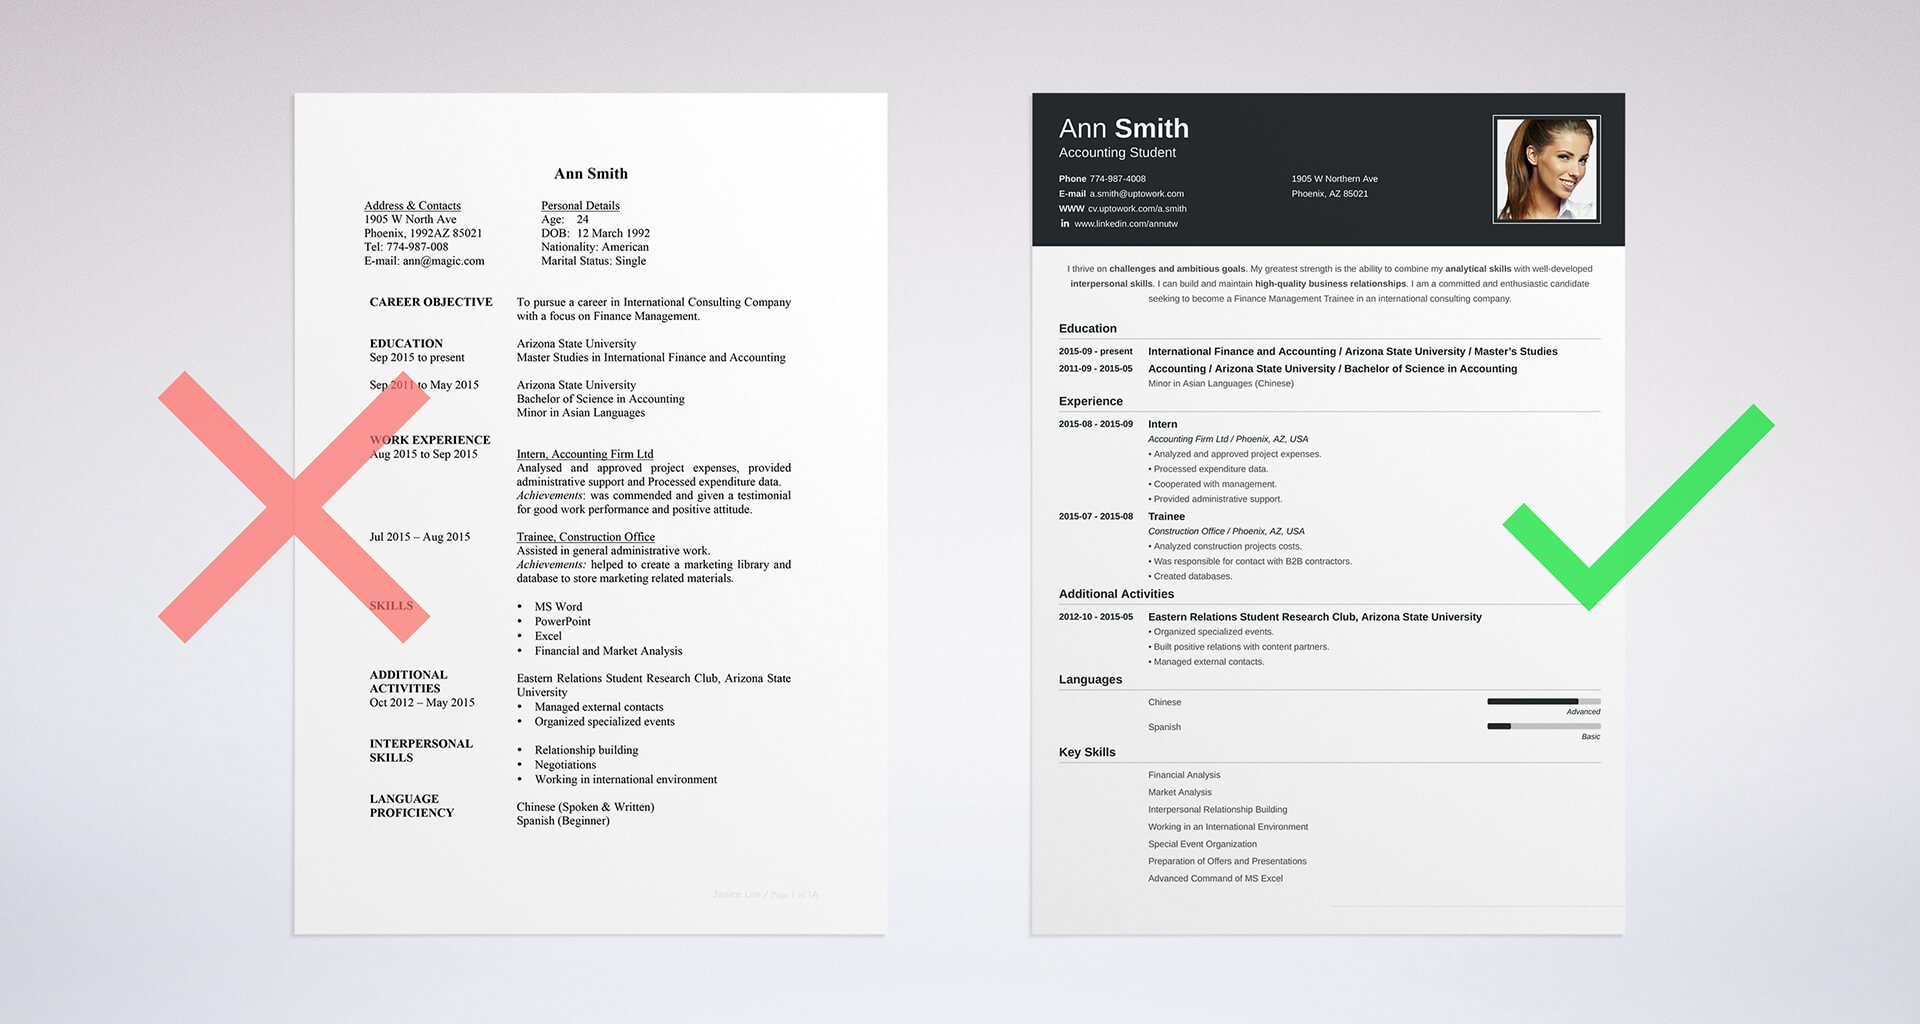 20 resume objective examples use them on your resume tips altavistaventures Image collections